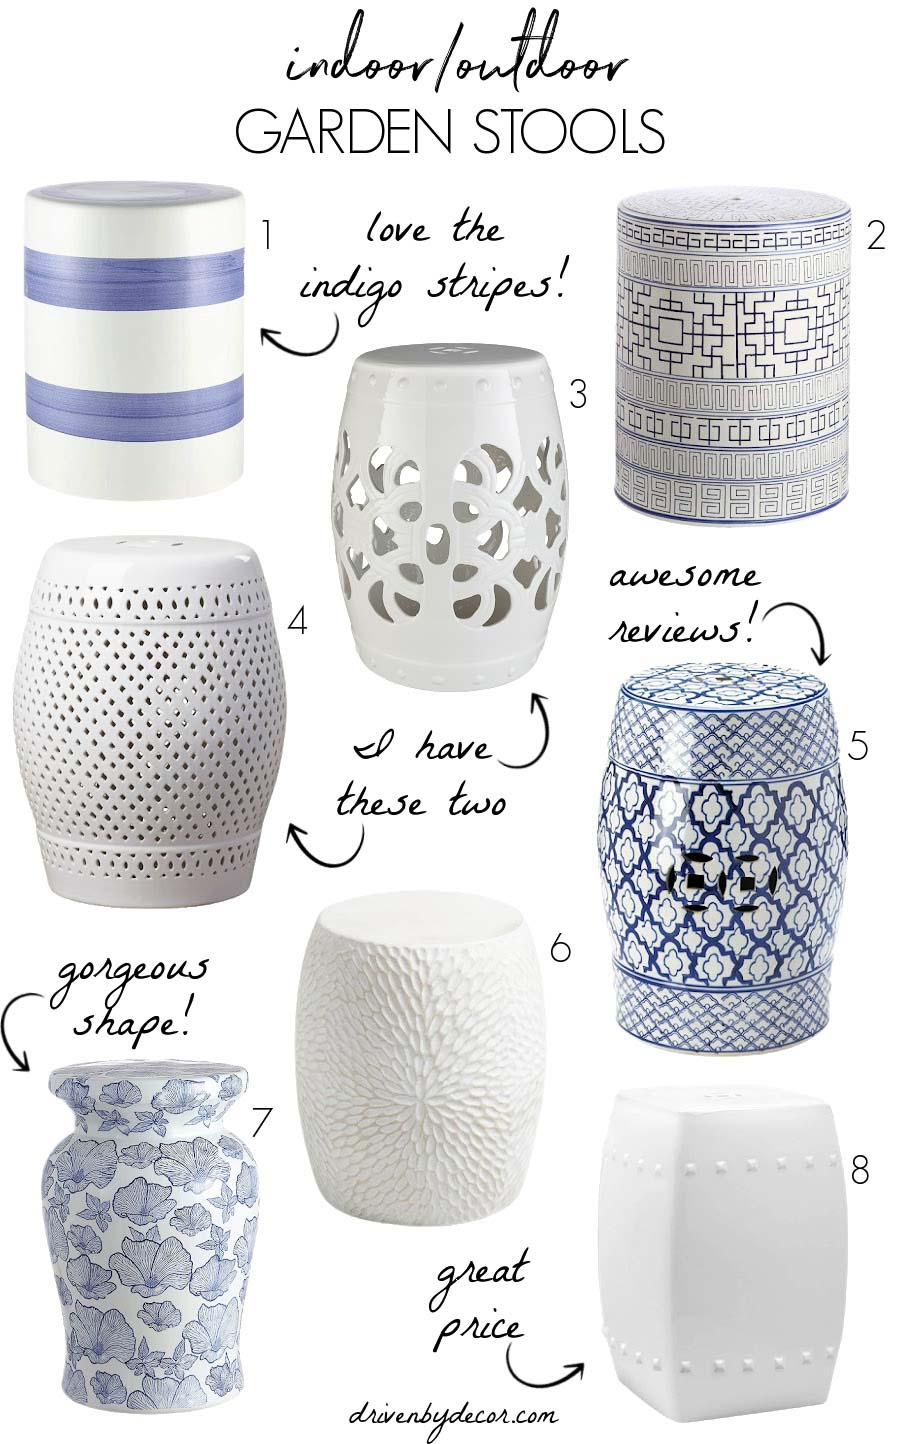 Favorite garden stools for use inside and out!